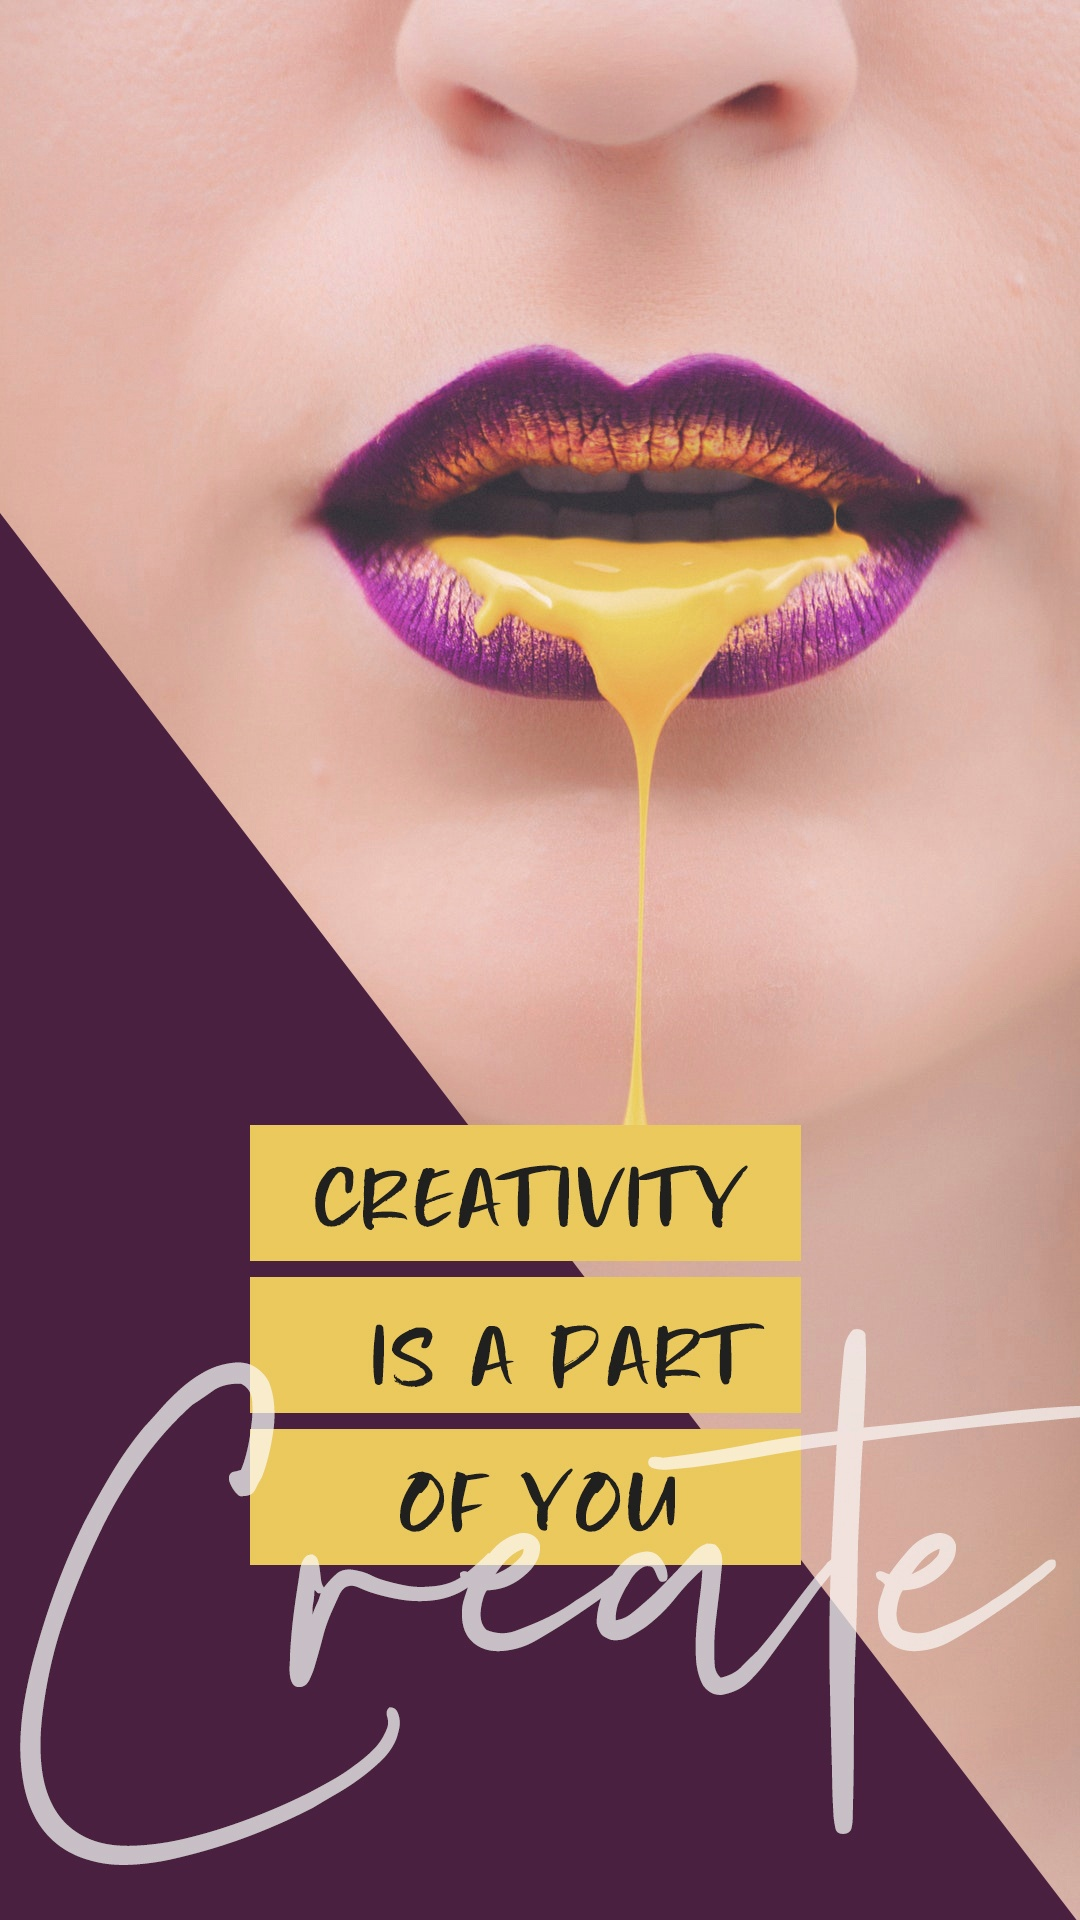 what does your creative self look like